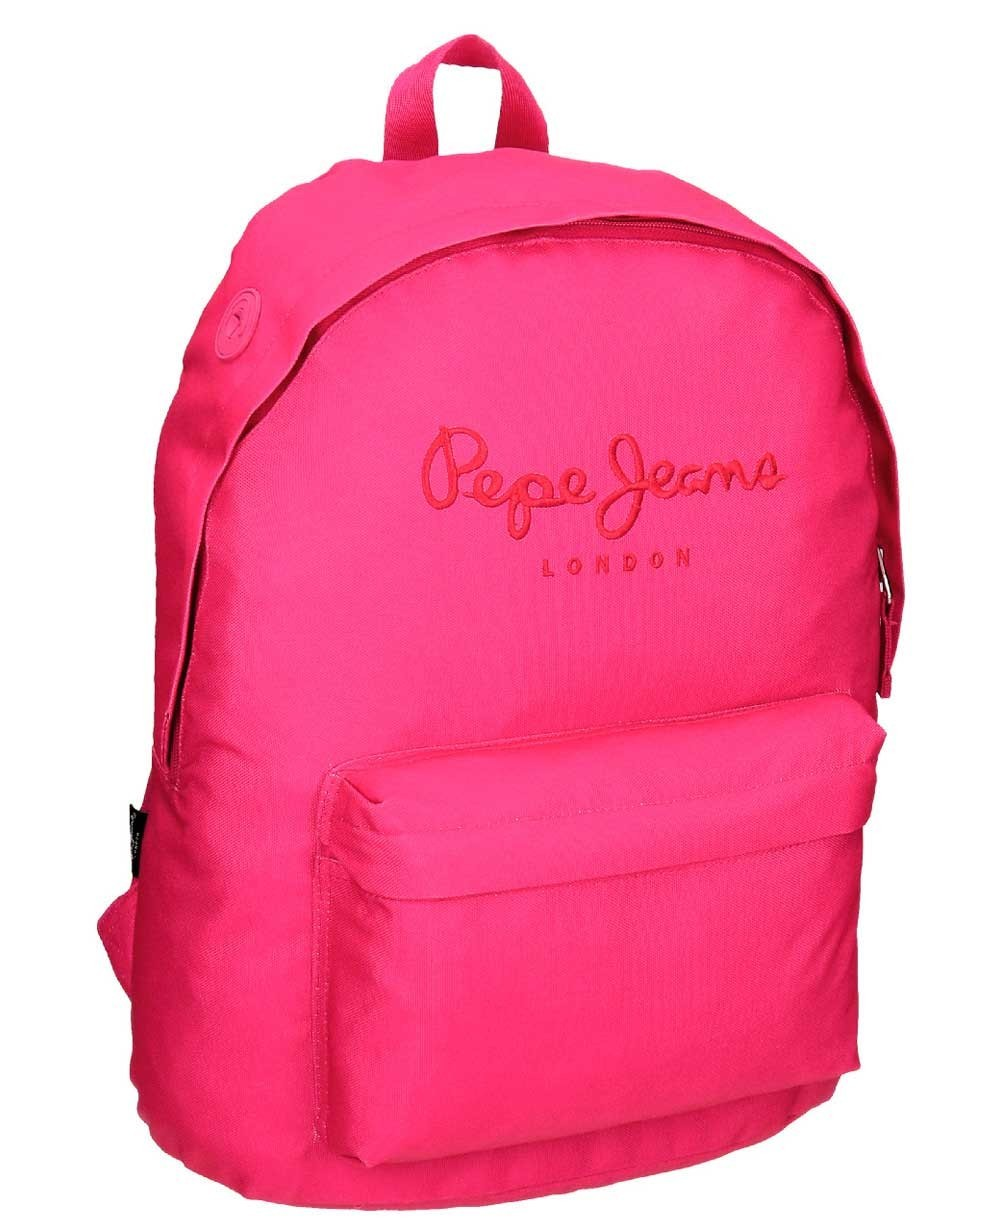 Pepe Jeans Plain Color Mochila adaptable Fucsia (Foto )